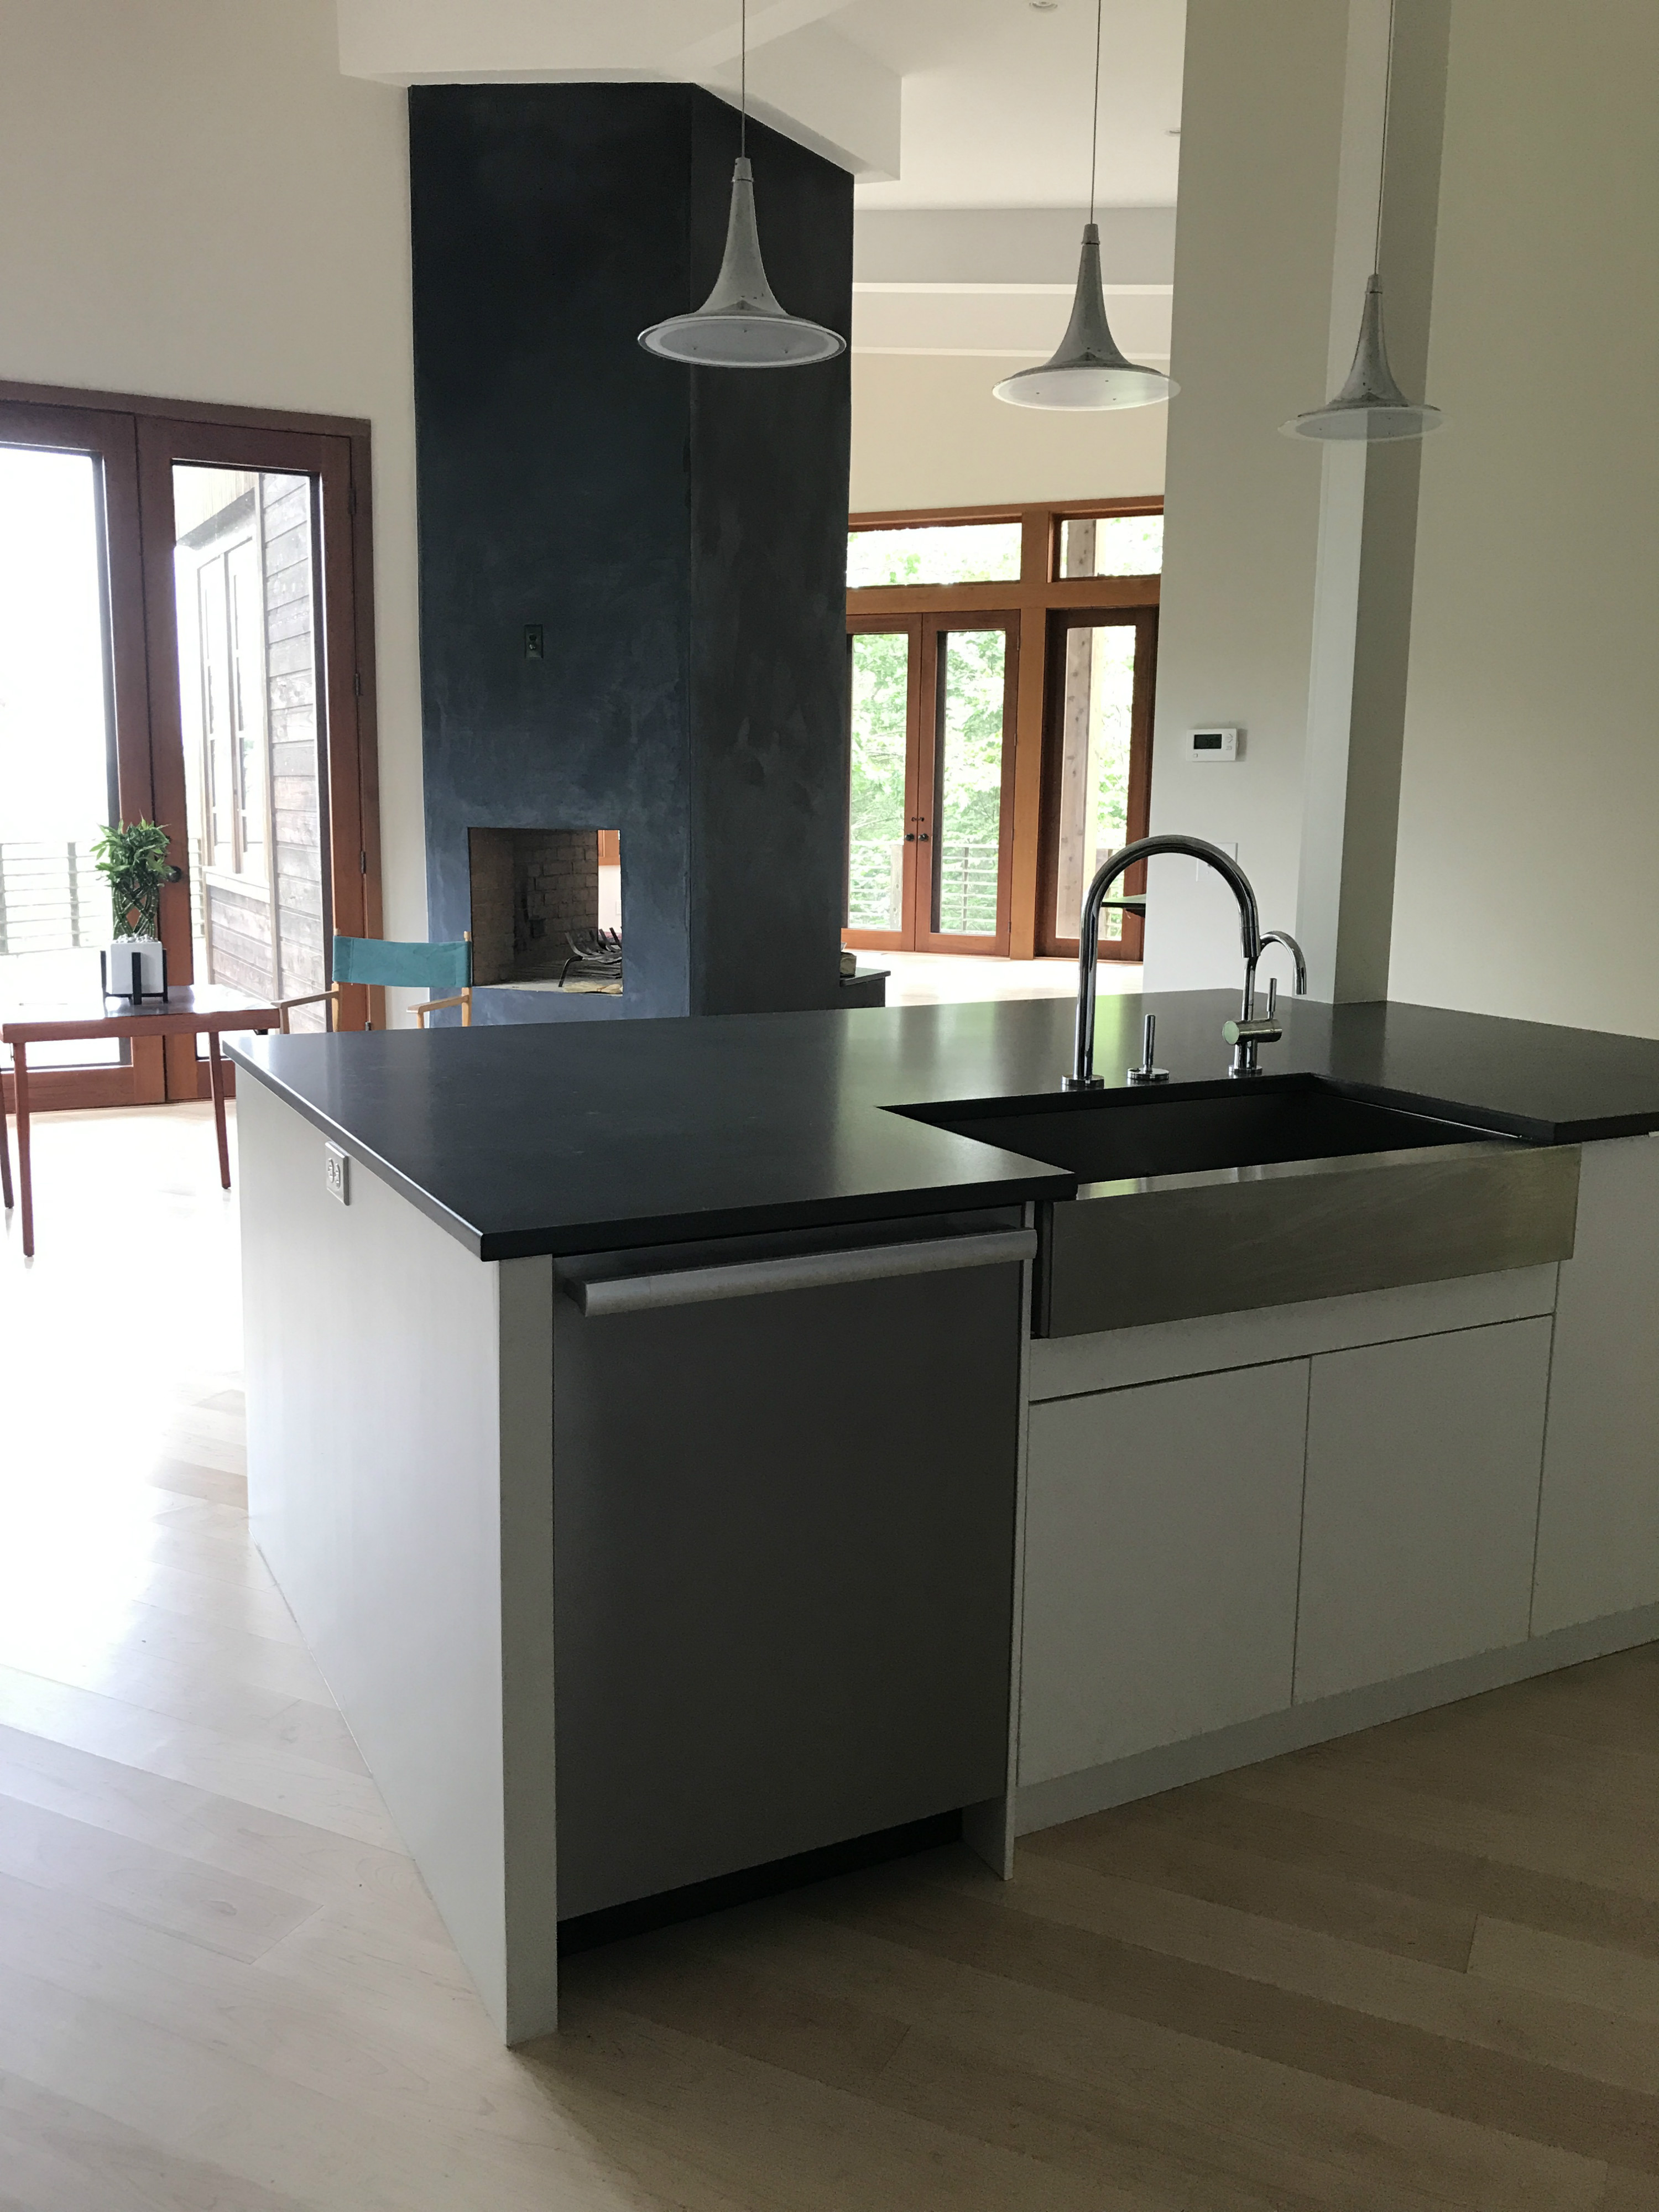 A Luxury Kitchen at a Fraction of the Cost (Thanks to IKEA)